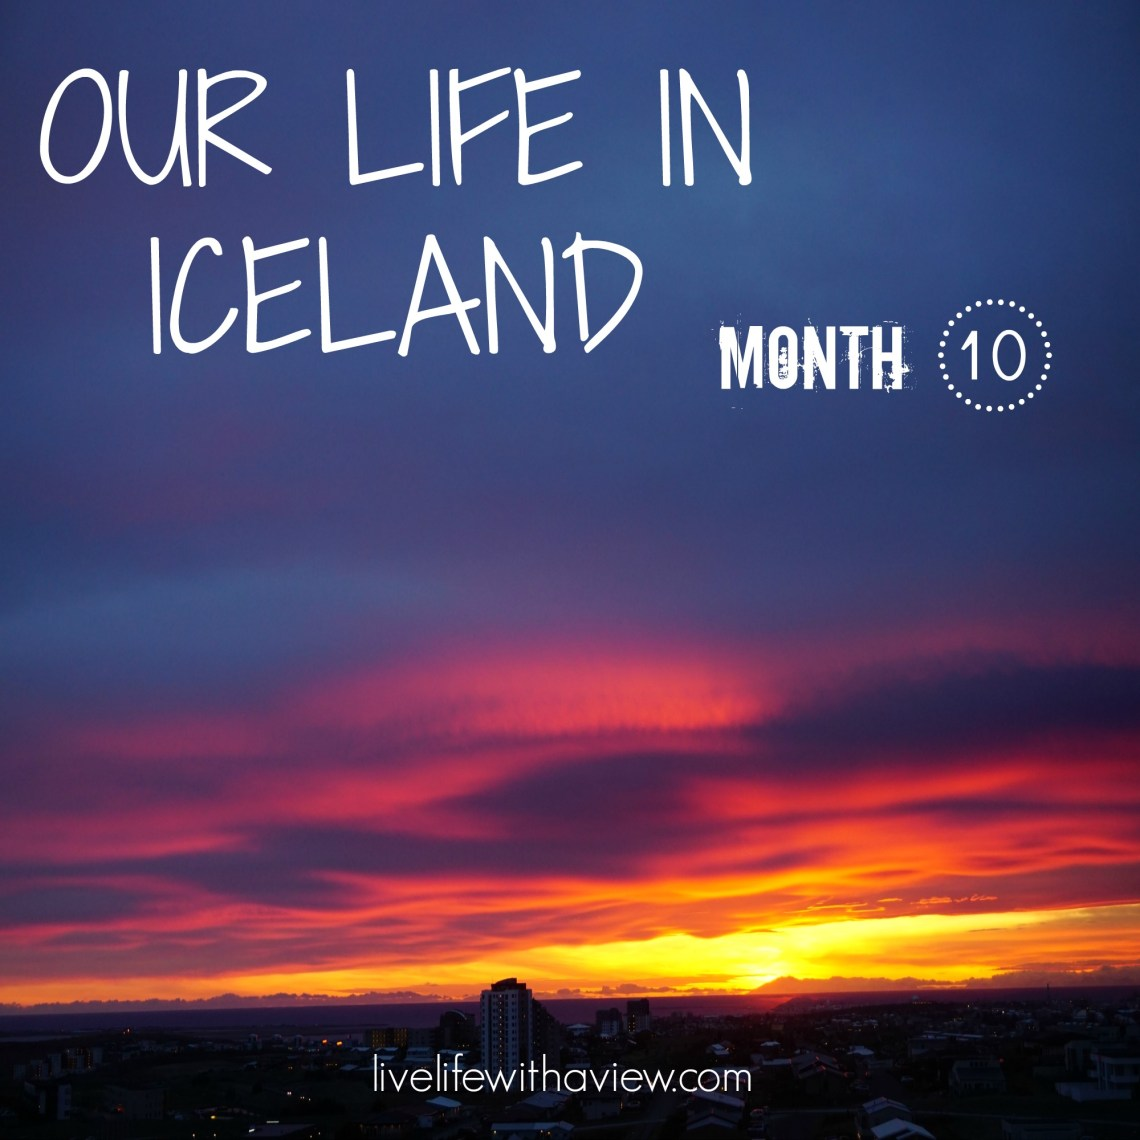 Our Life in Iceland - Month 10 Life With a View